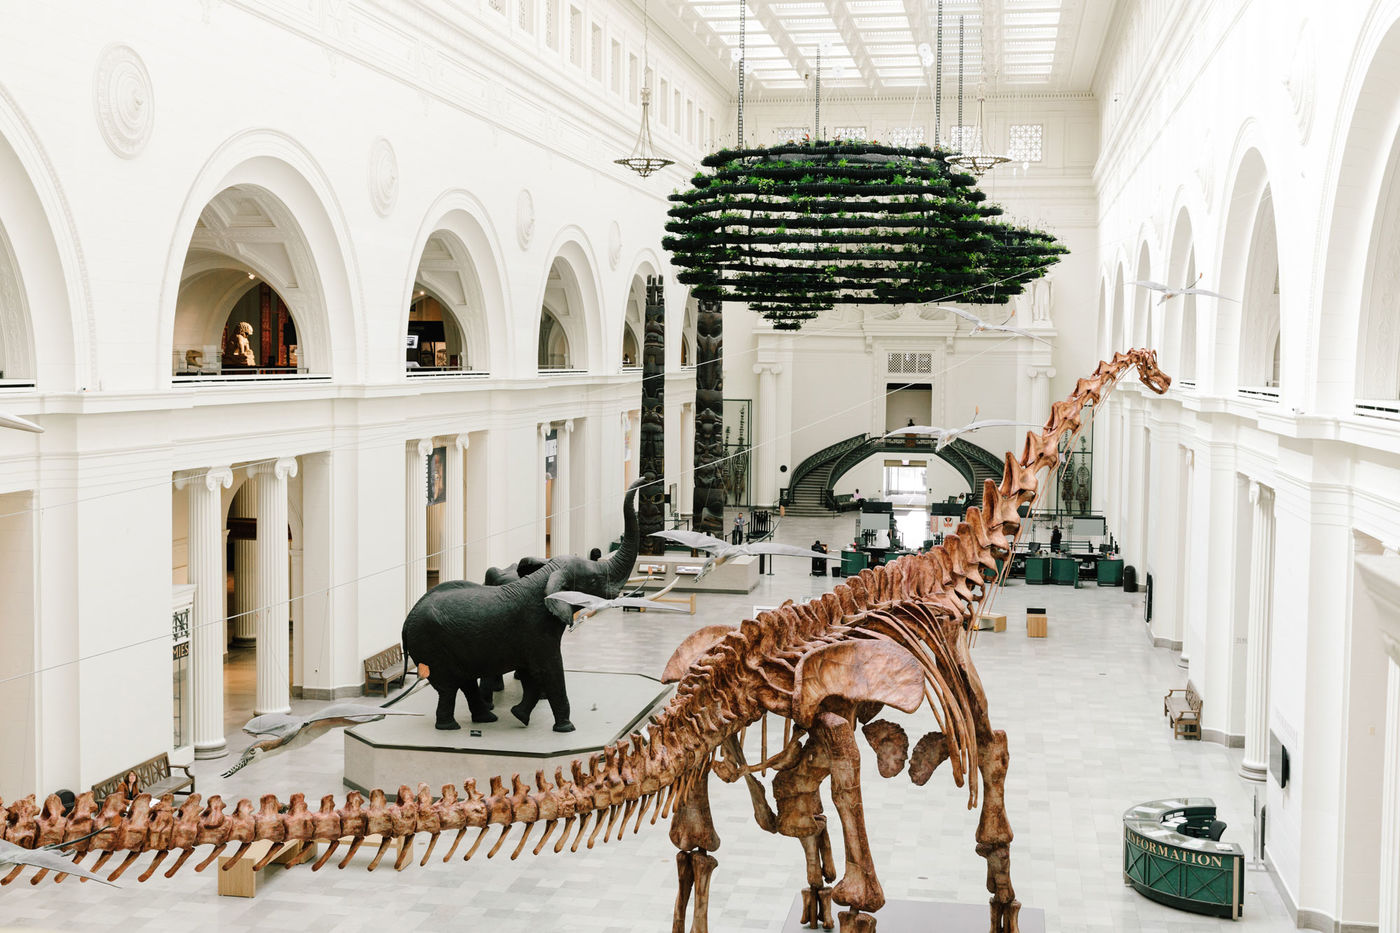 Wide view of Stanley Field Hall with Máximo the Titanosaur skeleton, two taxidermied elephants, and hanging gardens suspended from the ceiling.